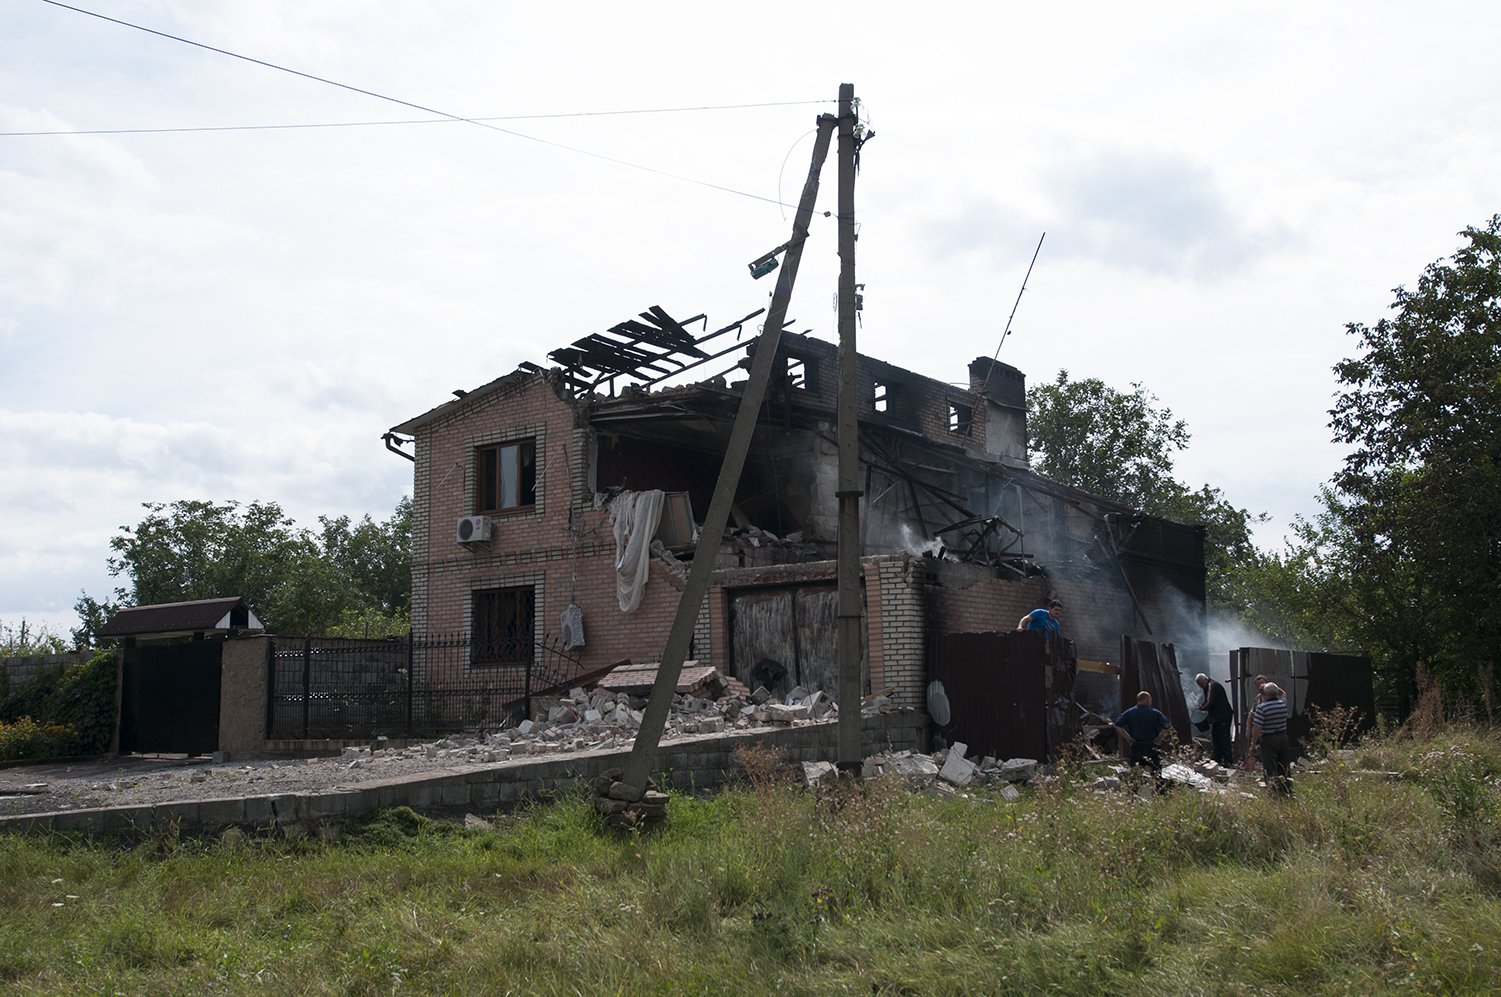 Men pulling out debris out of a house three hours after it got hit by artillery fire.The locals blamed the damages on Putin and reported the presence of a DNR compound nearby